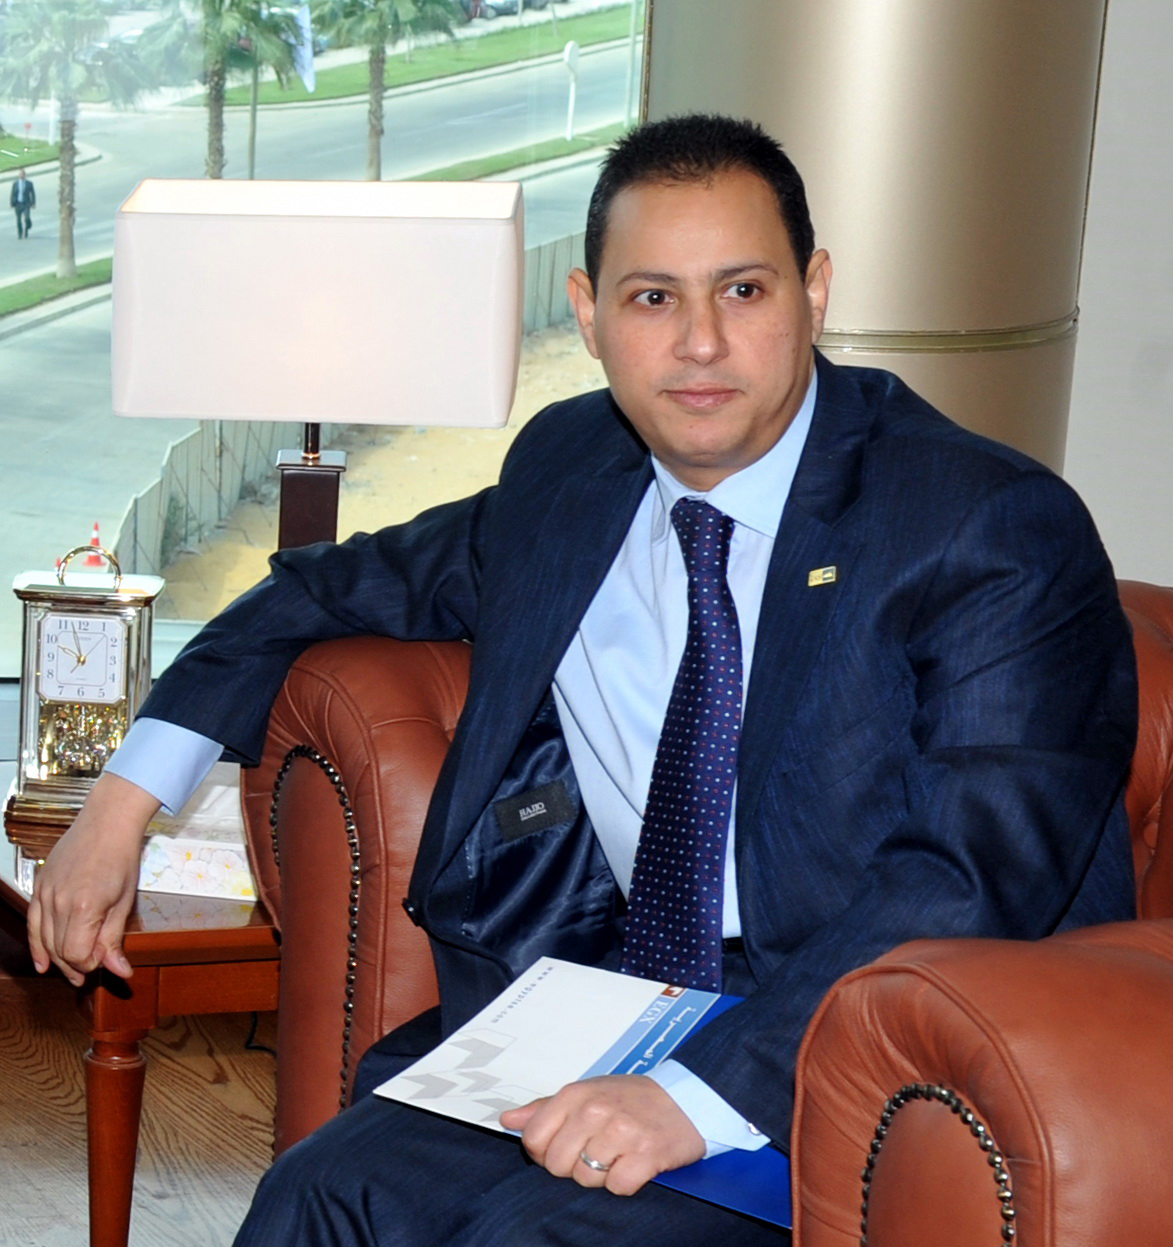 Daily News Egypt sat down with the Egyptian Exchange's Chairman Mohamed Omran to discuss the future of IPOs, the sectors that are expected to have a strong showing, and why he believes that the newly introduced regulations have influenced the capital market. (DNE Photo)